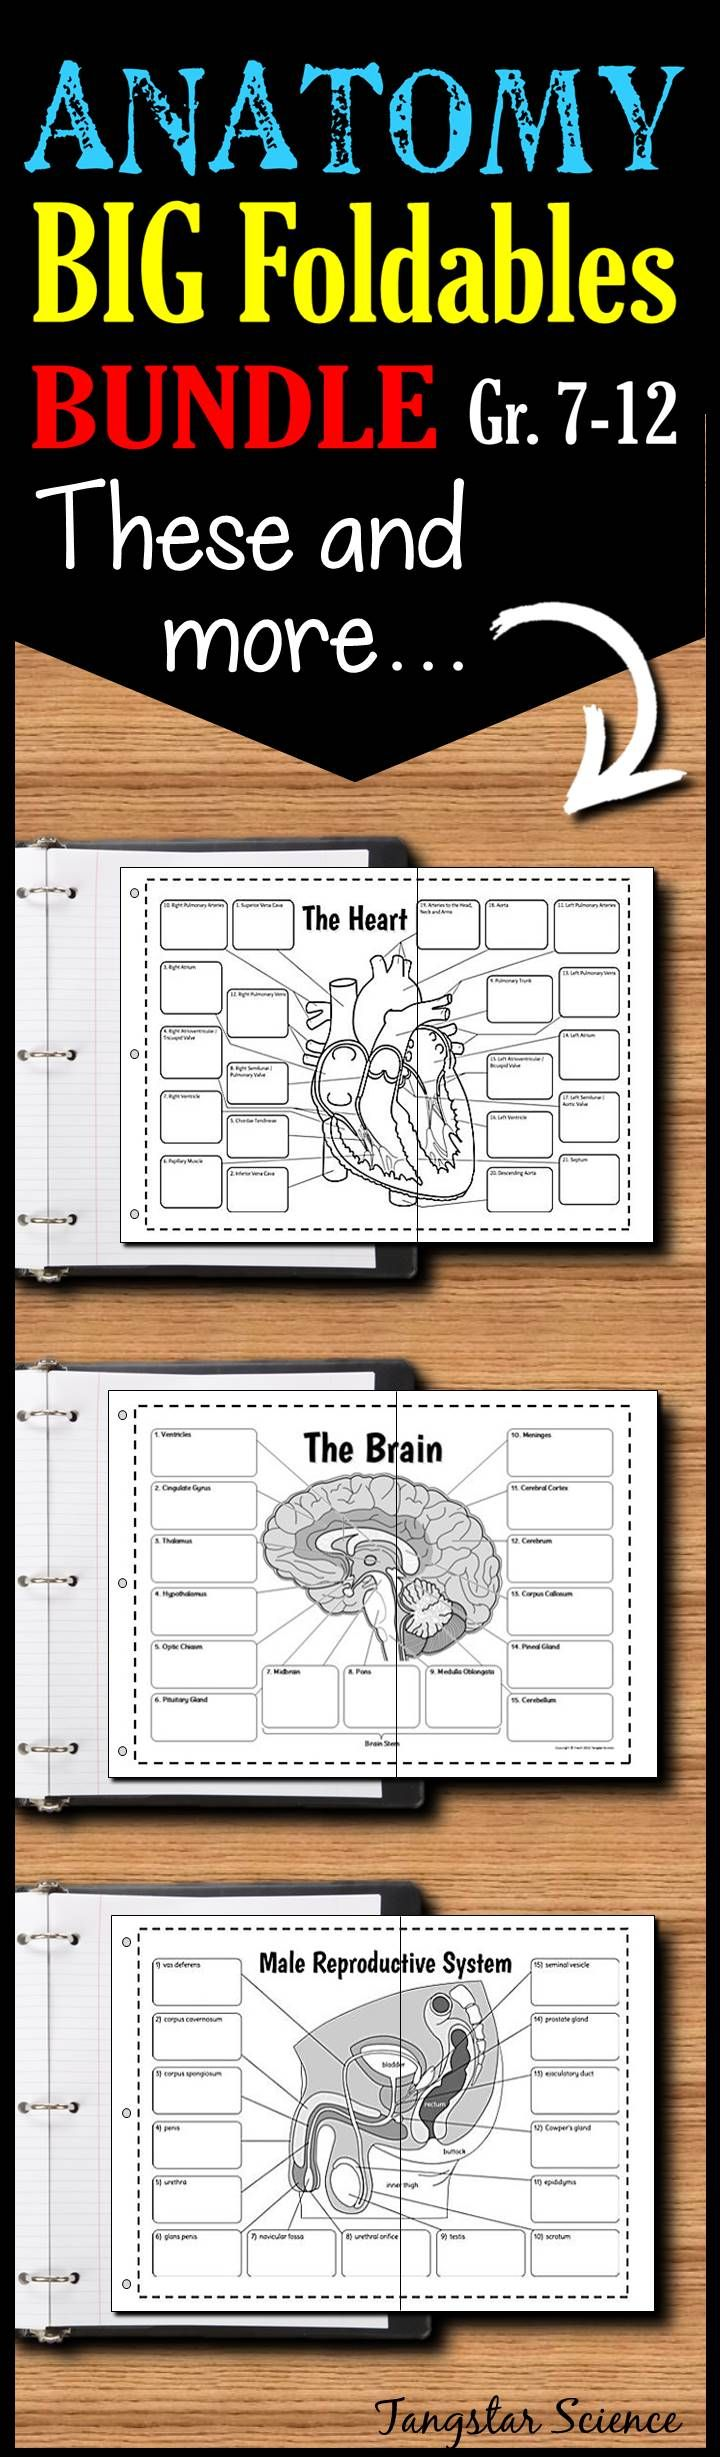 Massive Anatomy Foldables Bundle for Interactive Notebooks or Binders 82a6ed144c67d1560336b07ada2c1030  nursing care body systems